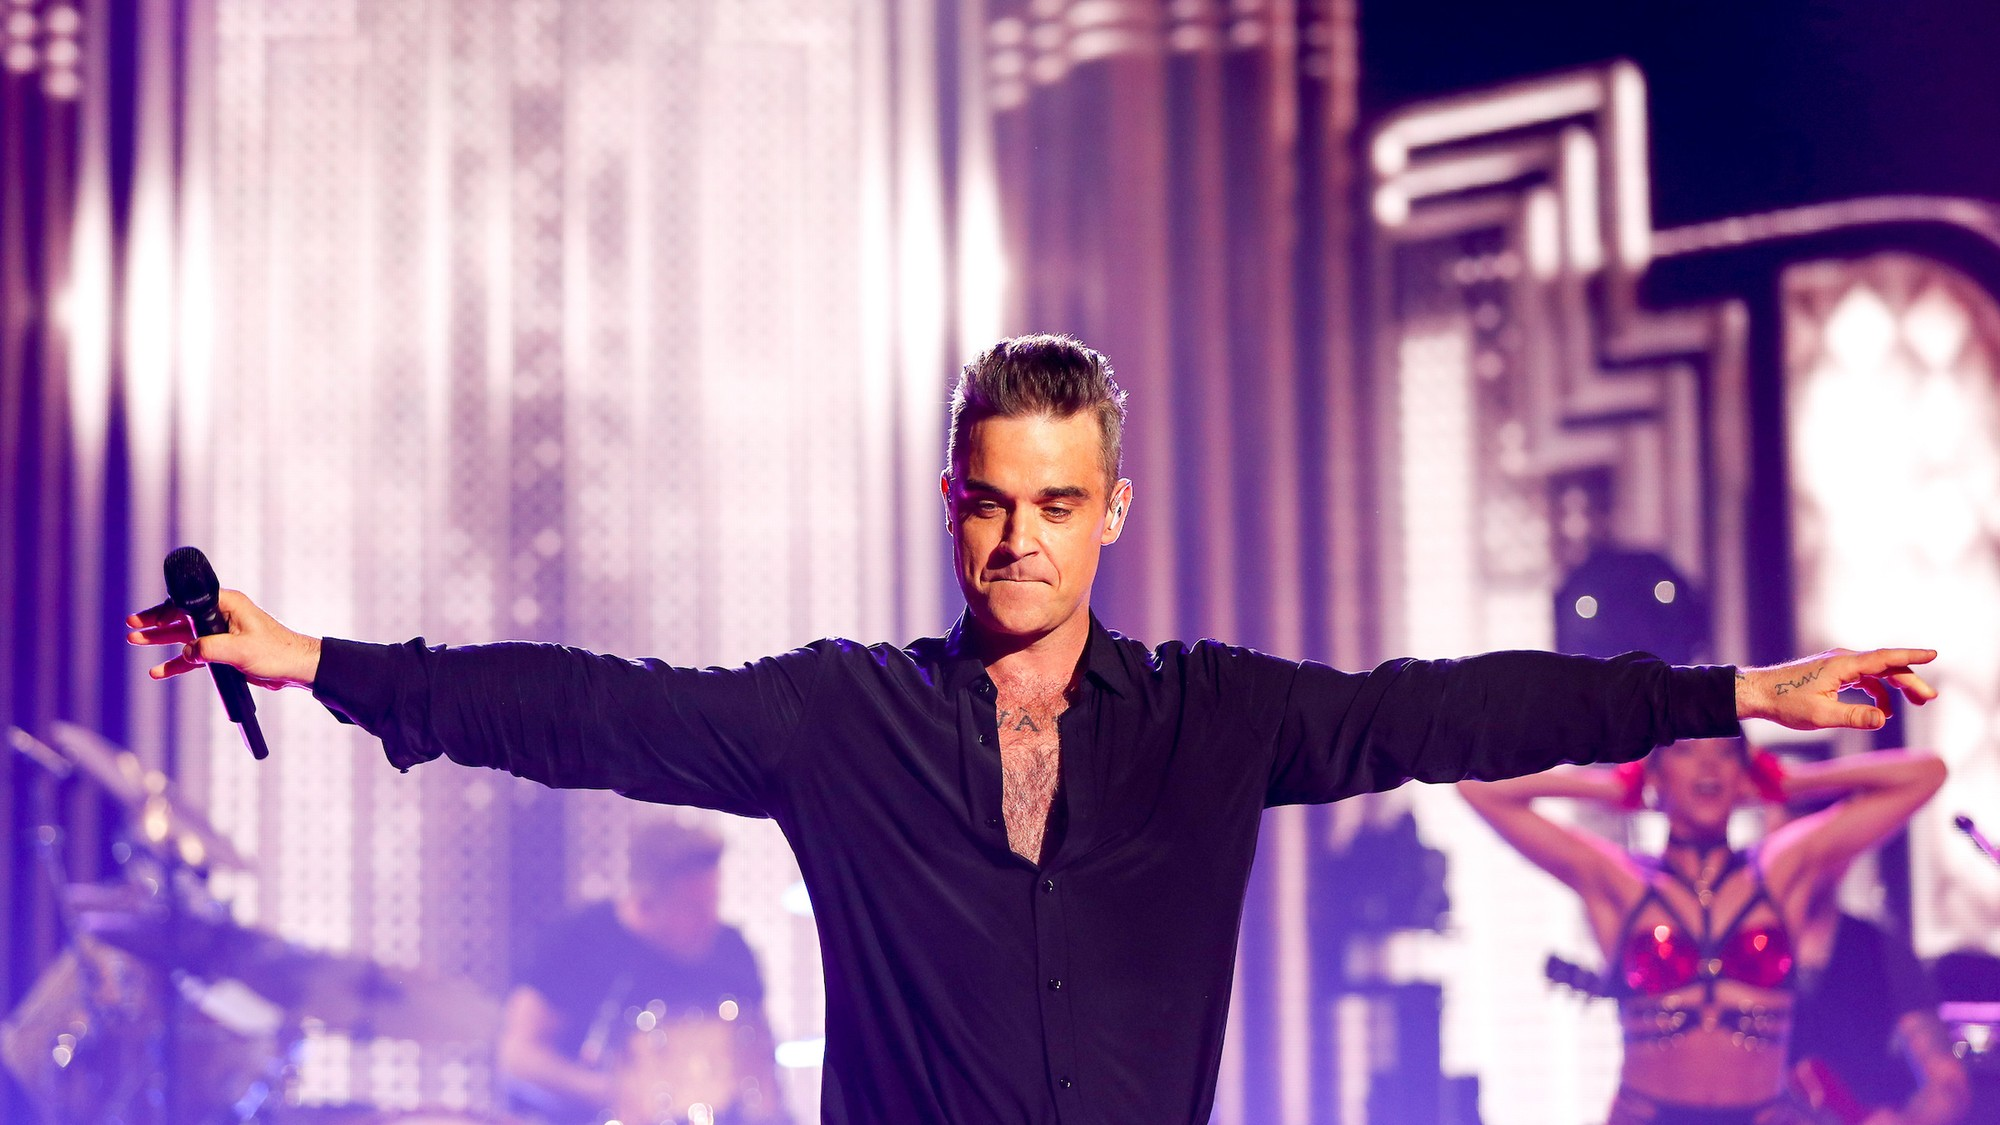 Robbie Williams: The Great British Pop Star Who Will Never